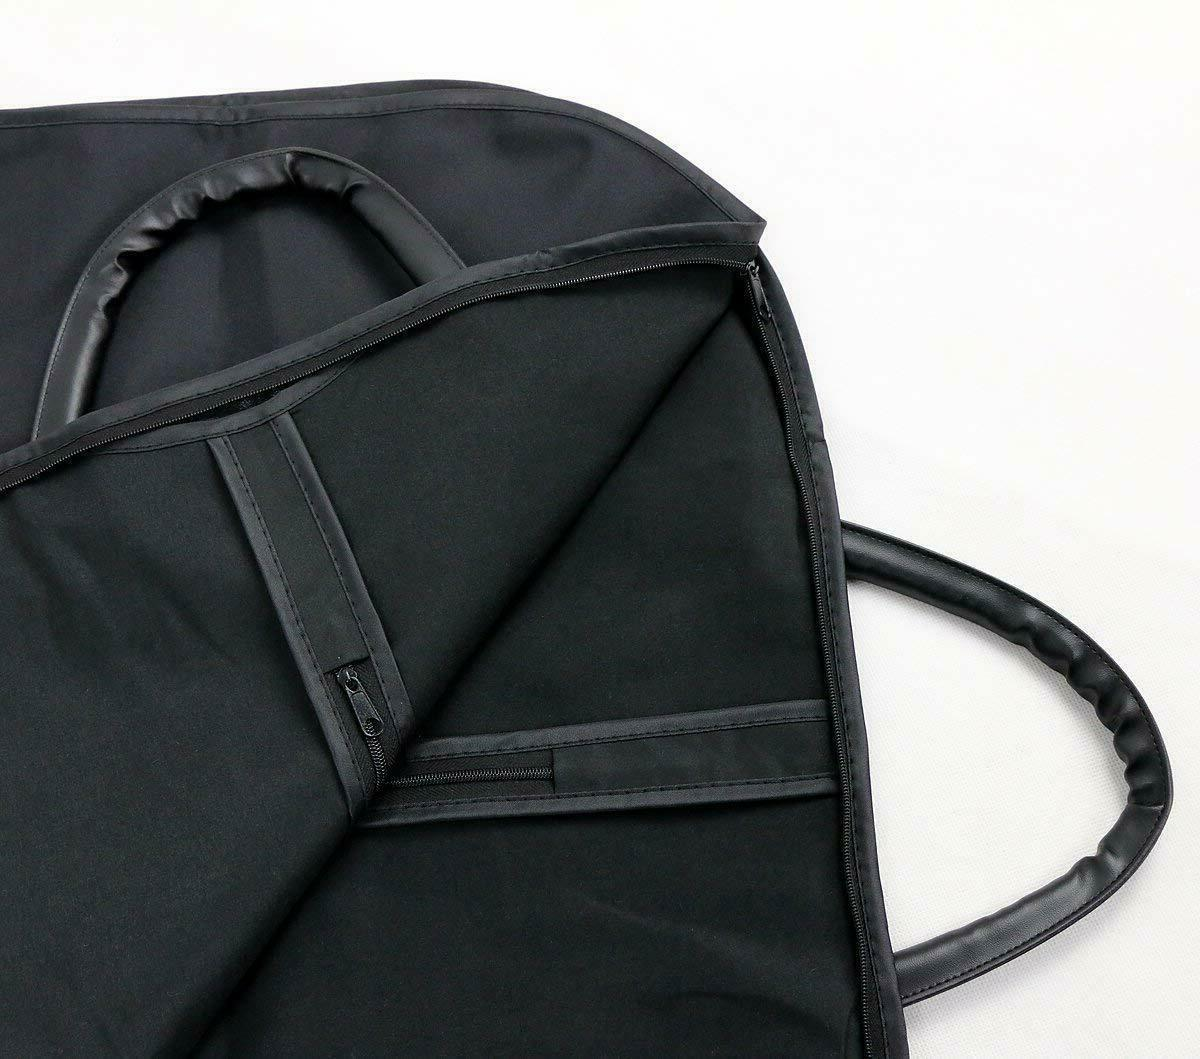 Hanging Large Hang Up Clothes Travel Cover Carrier Foldable